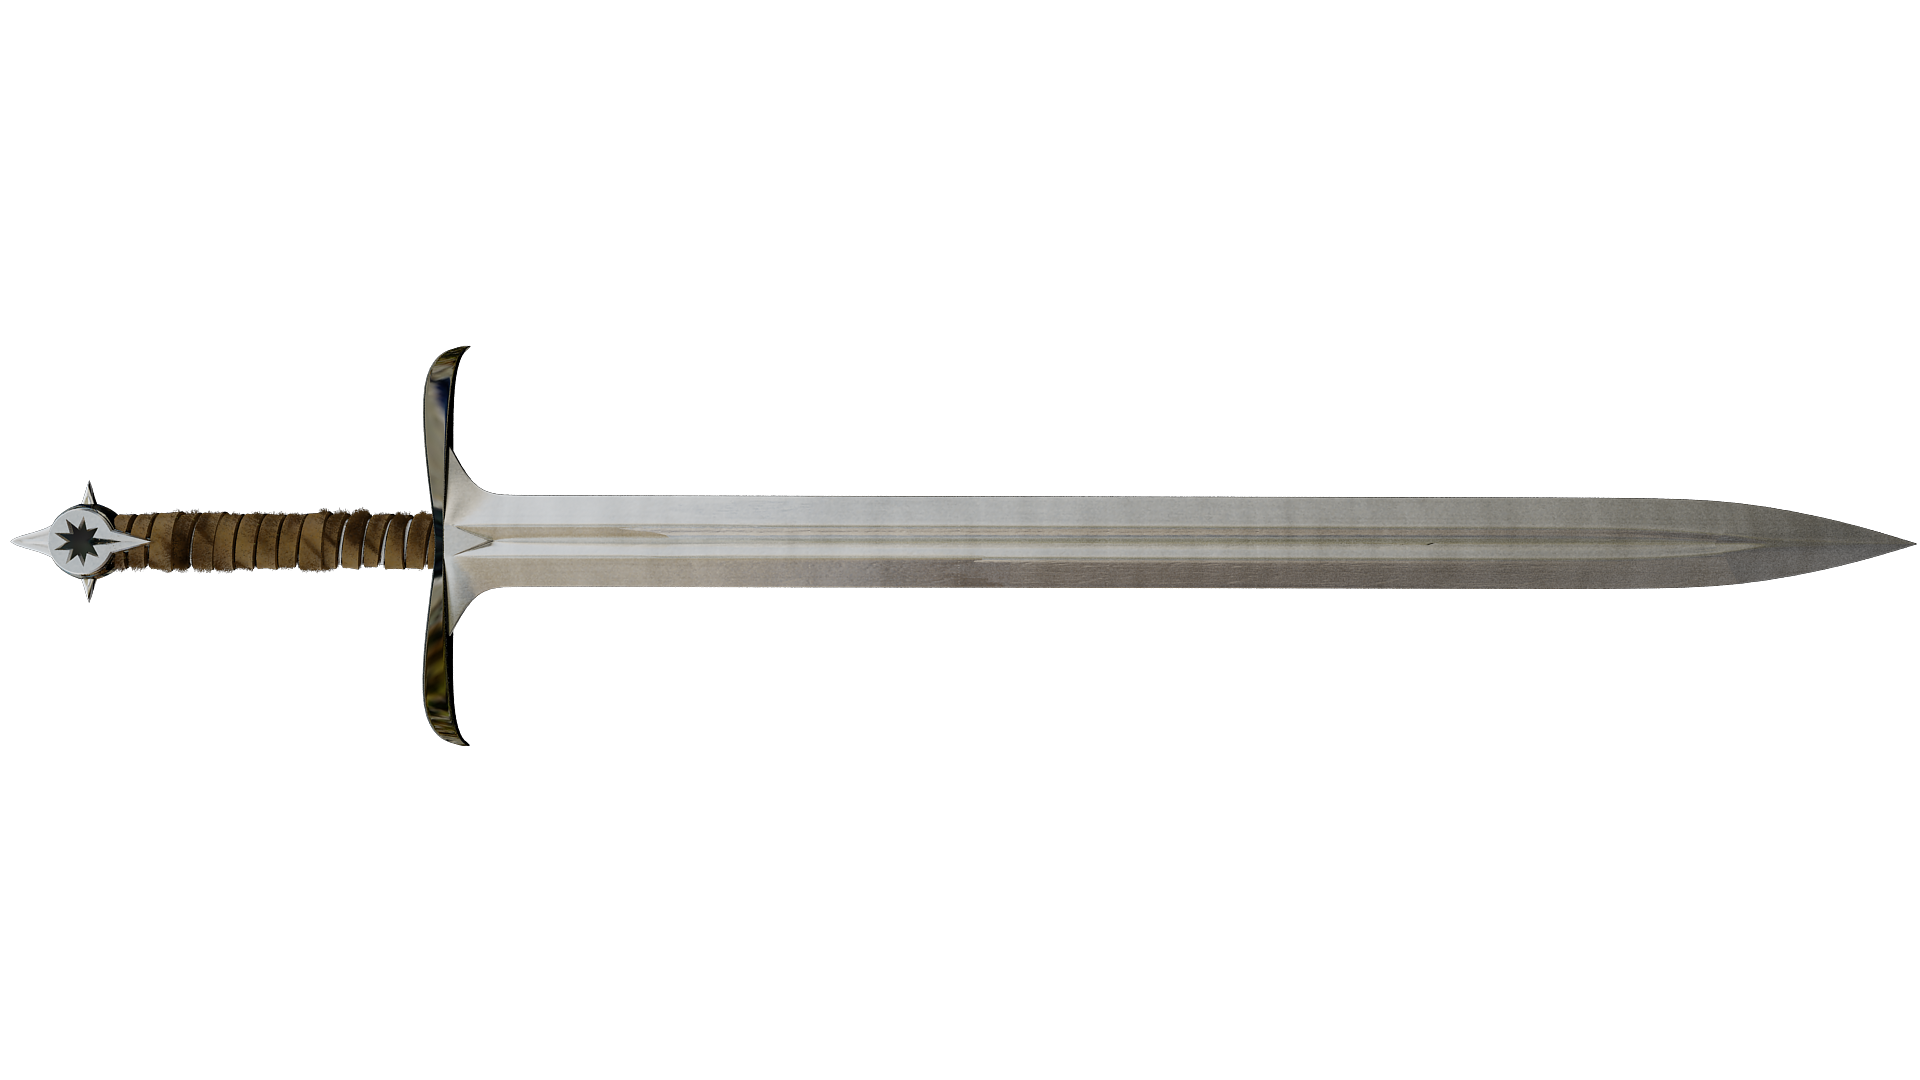 Topic des absences - Page 6 Sword-hd-png-sword-png-image-1920